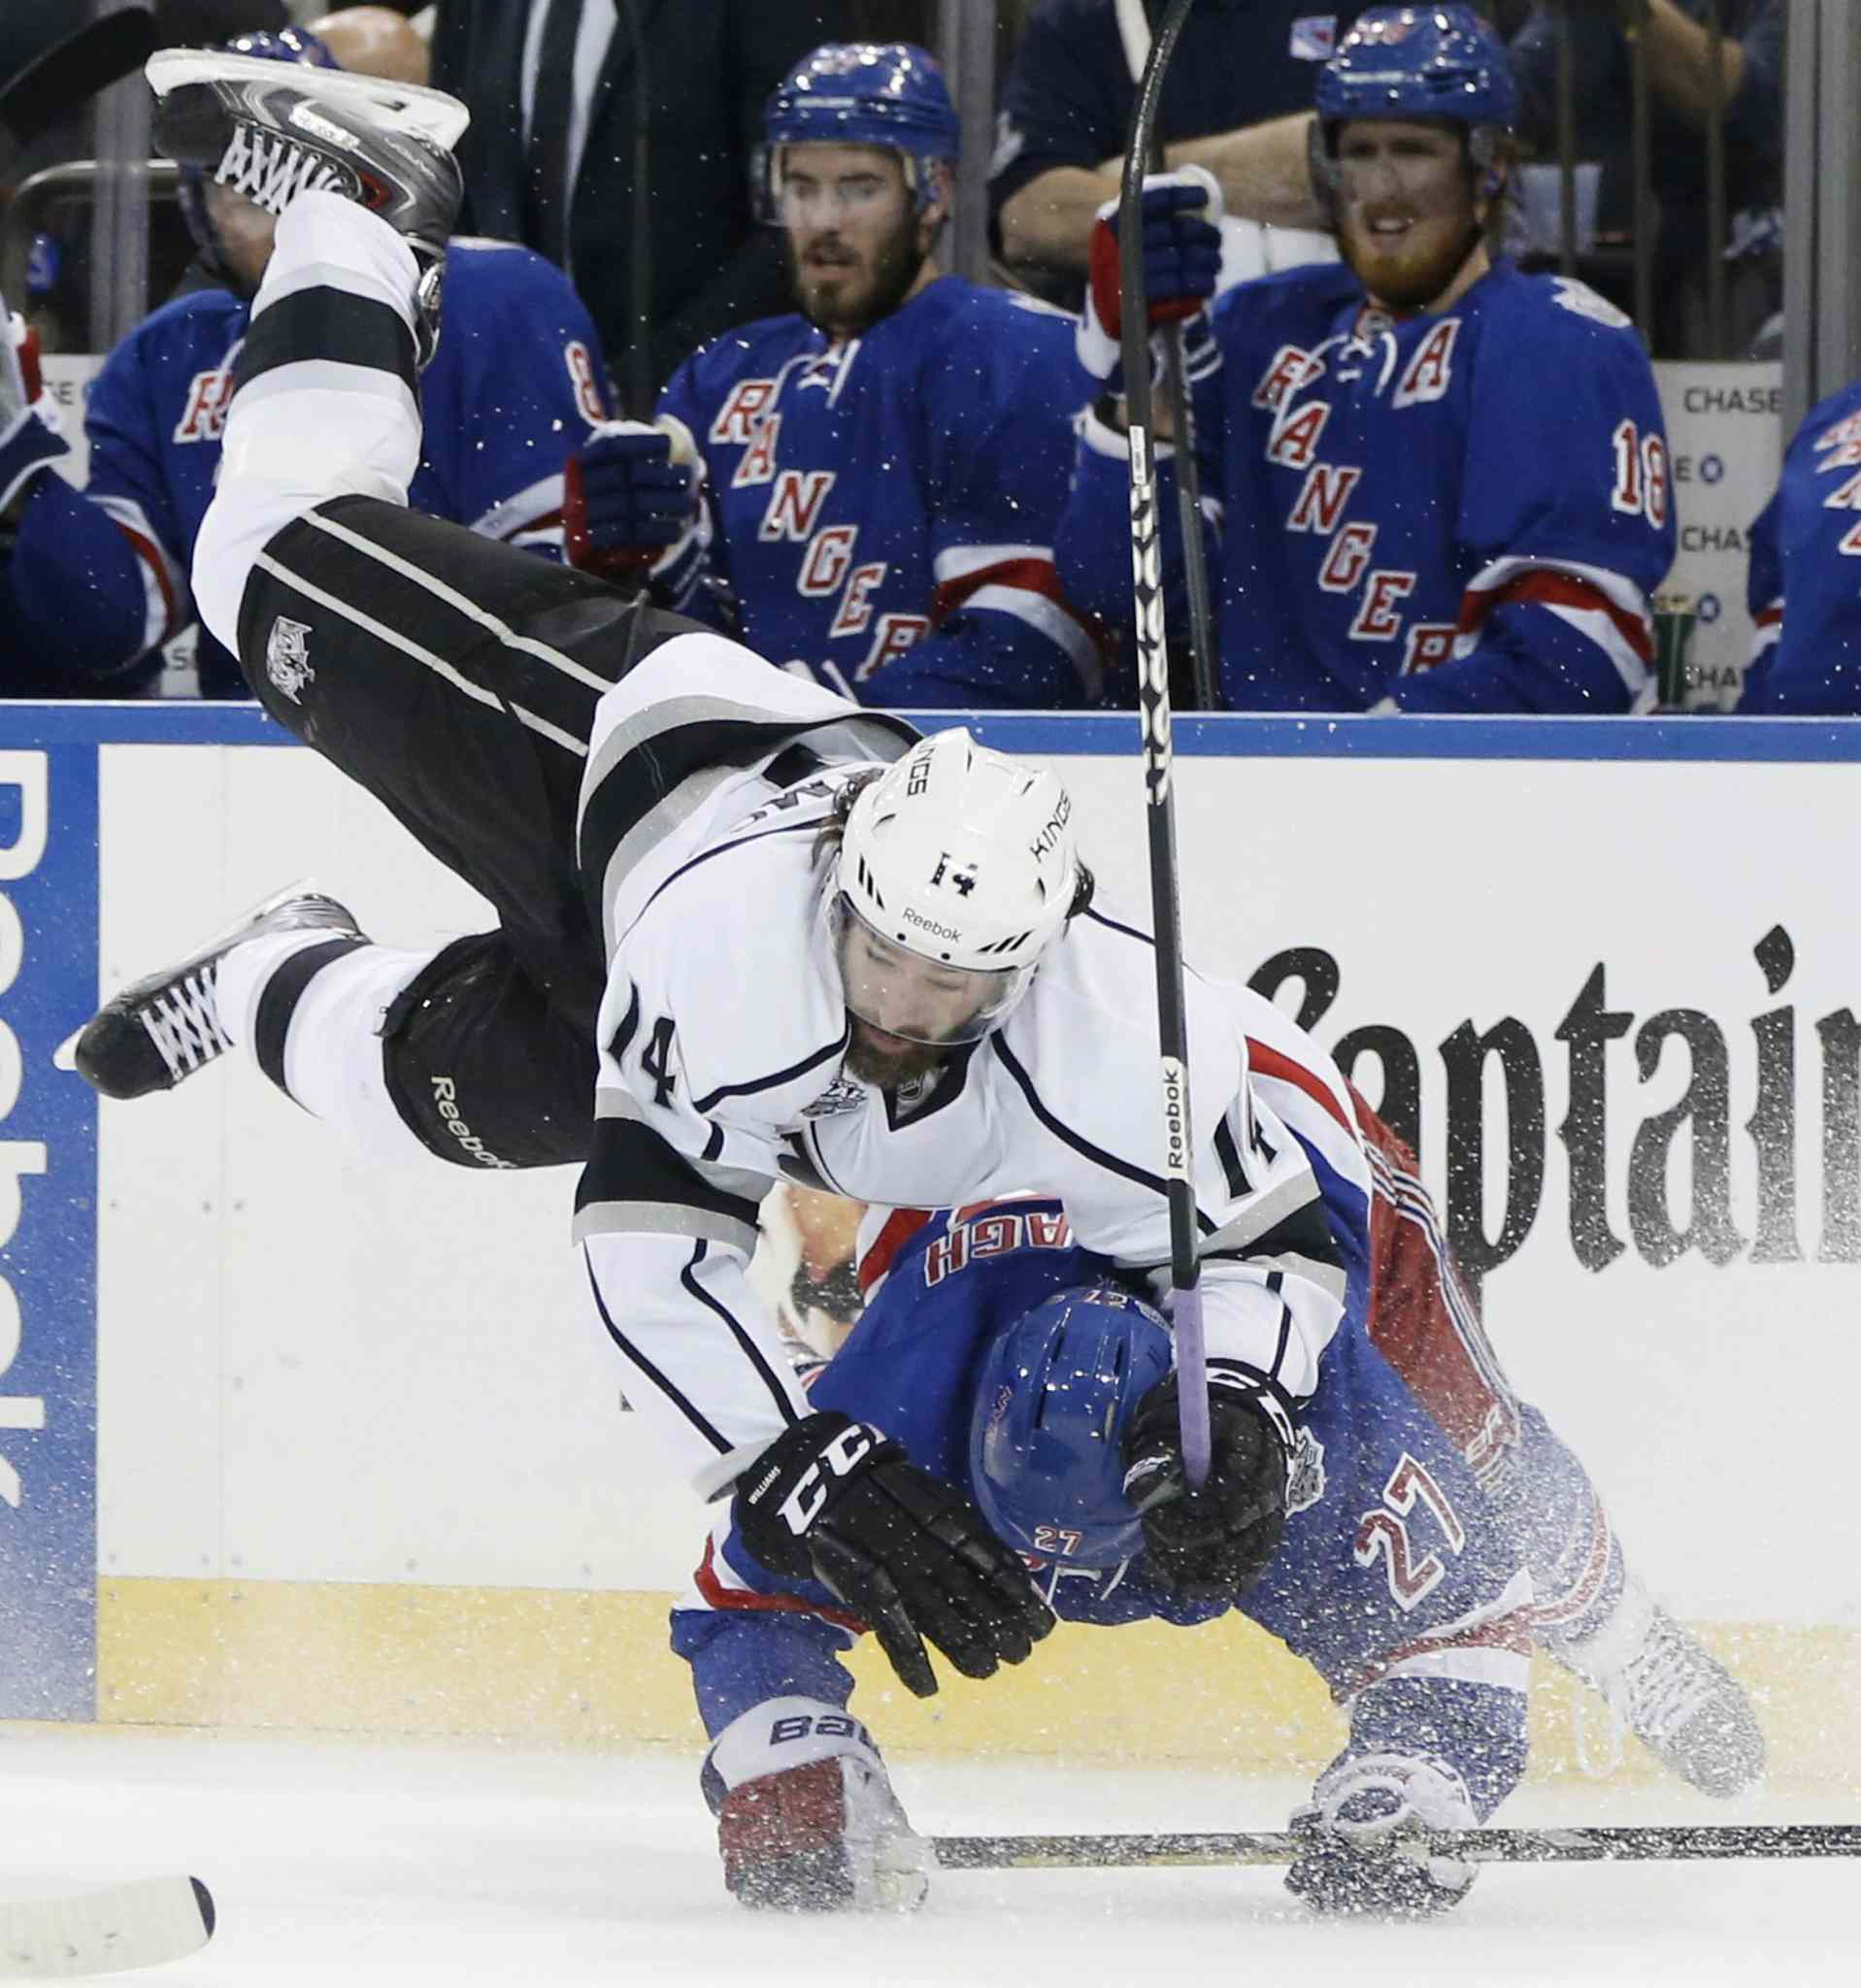 Los Angeles Kings' right wing Justin Williams (14) collides with New York Rangers' defenceman Ryan McDonagh (27) in the first period during Game 4 of the NHL hockey Stanley Cup Final on Wednesday in New York.